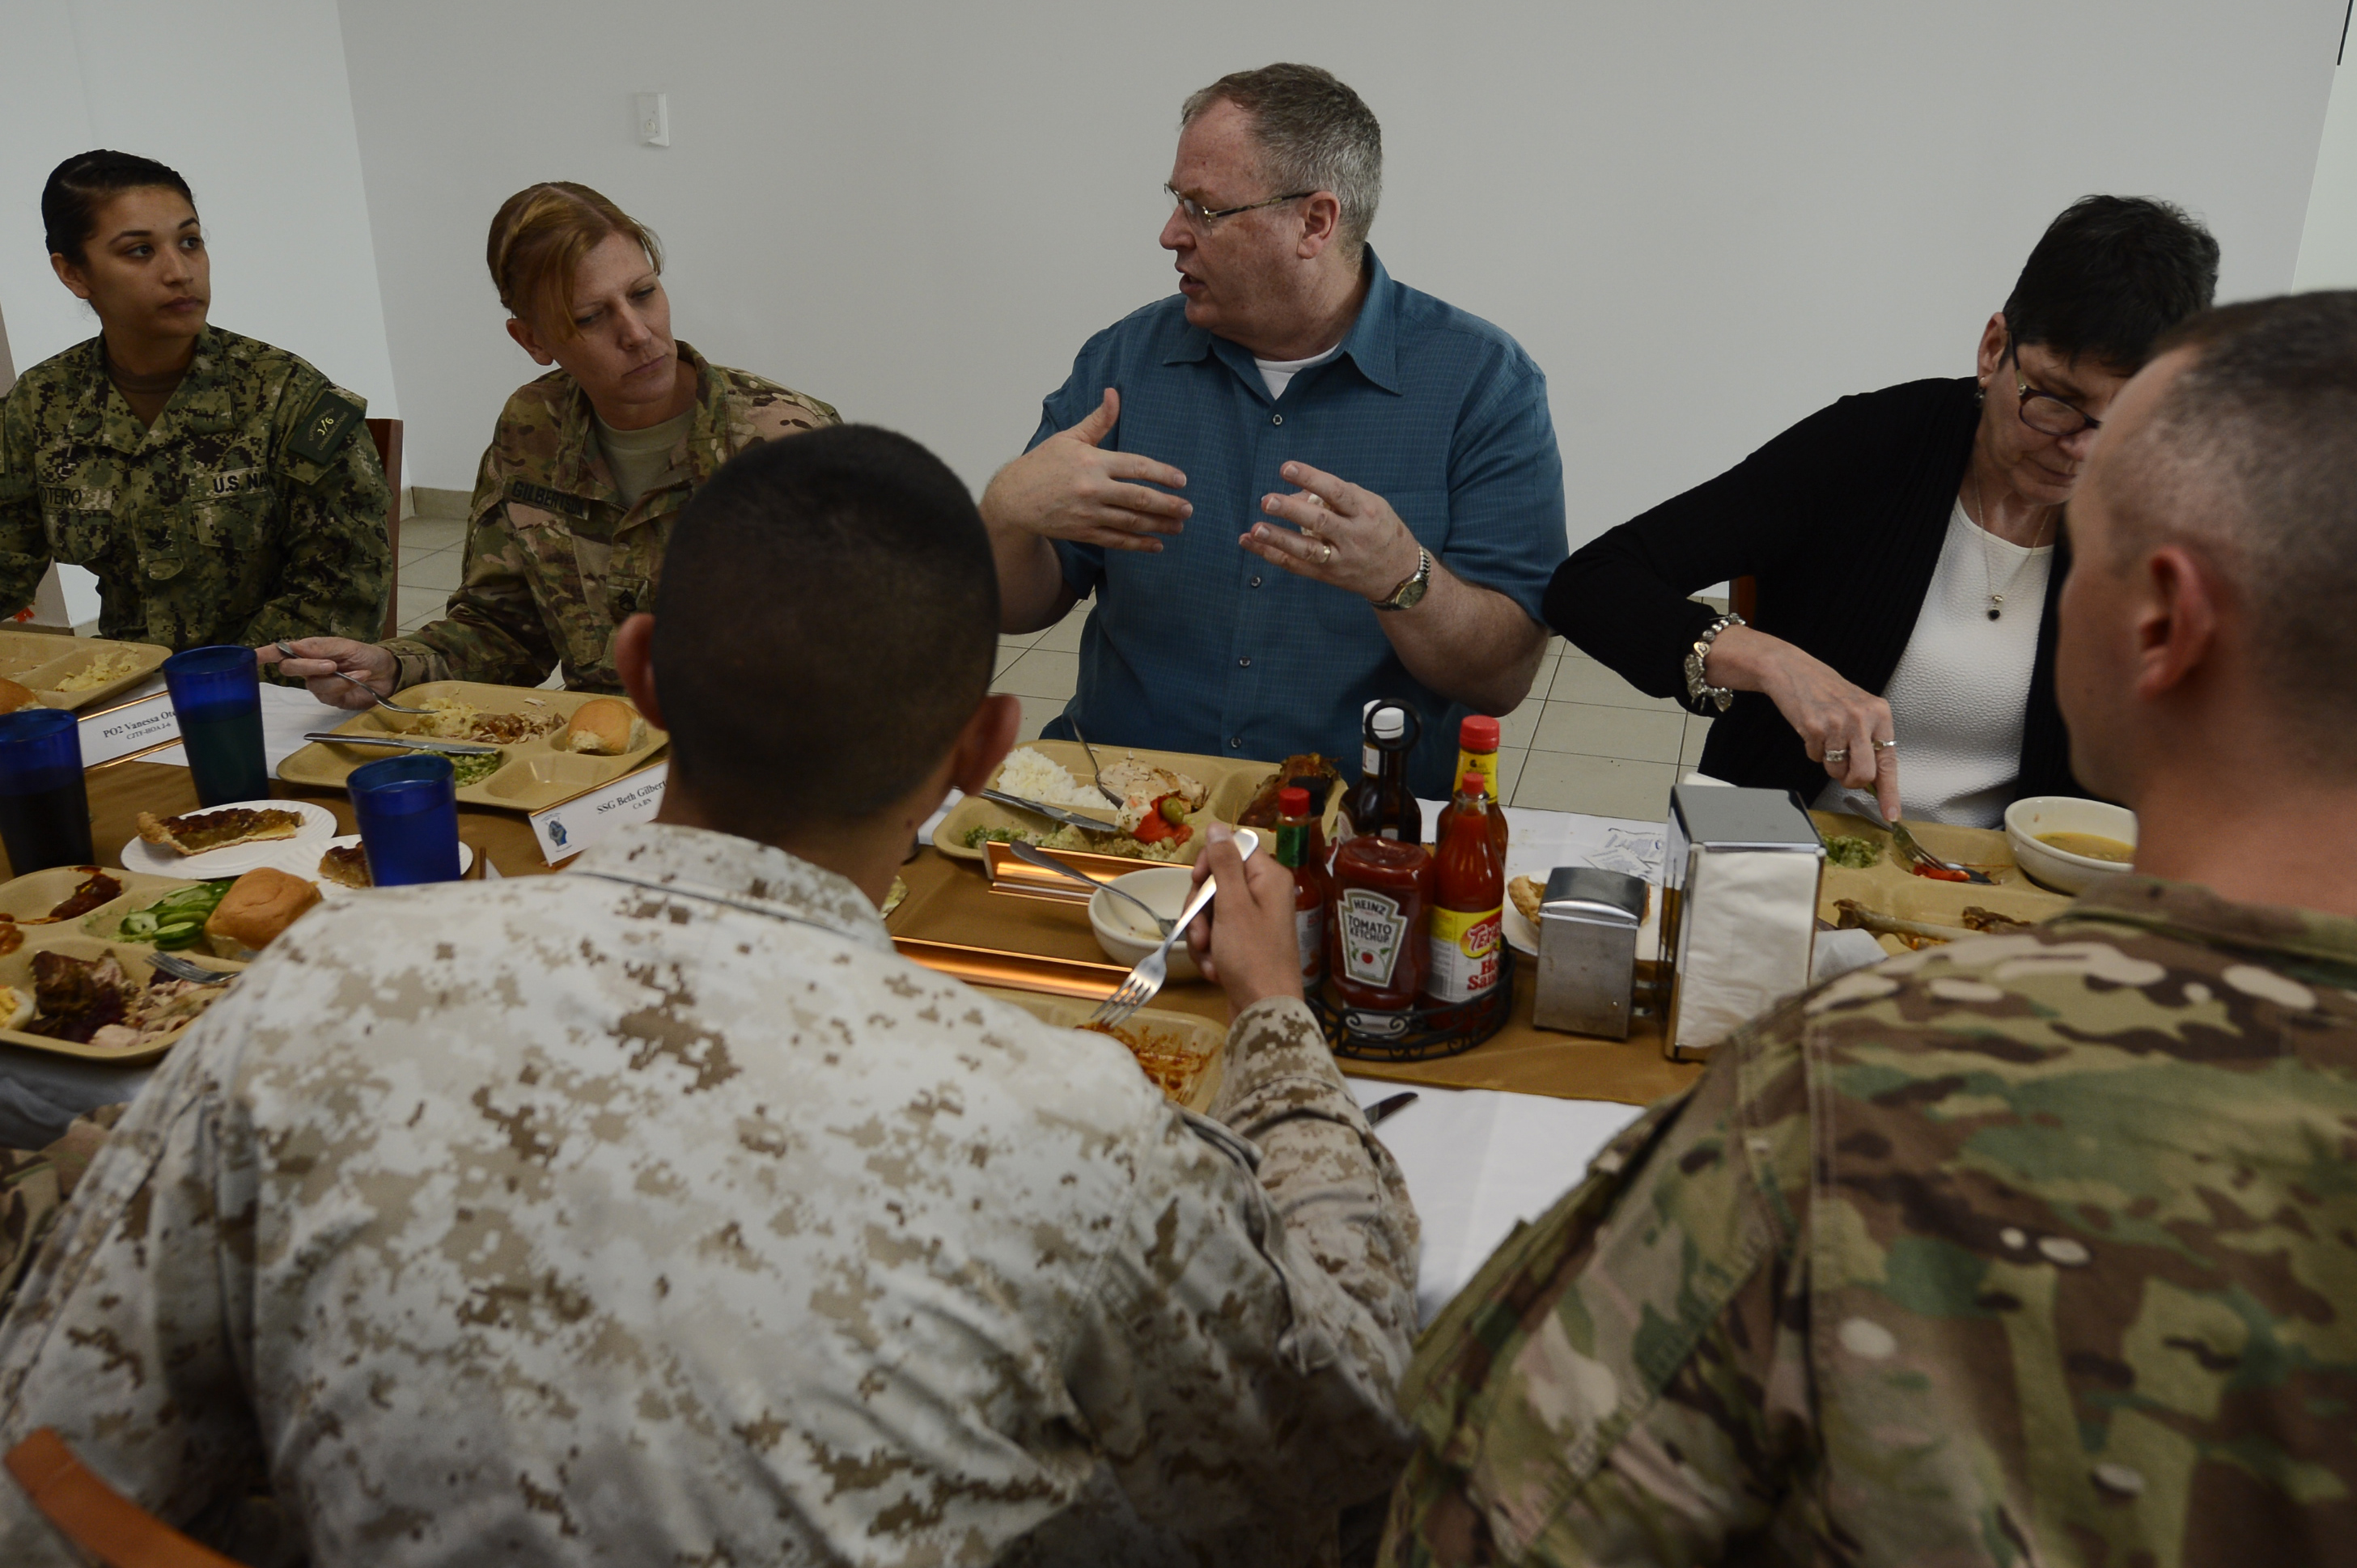 Deputy Secretary of Defense Bob Work speaks with NCOs from Camp Lemonnier, Djibouti, Nov. 26, 2015. After visiting much of the base, Work took the opportunity to sit down and eat a Thanksgiving meal with members of the camp. The group discussed changes across the Department of Defense and their deployment experiences. (U.S. Air Force photo by Senior Airman Peter Thompson)